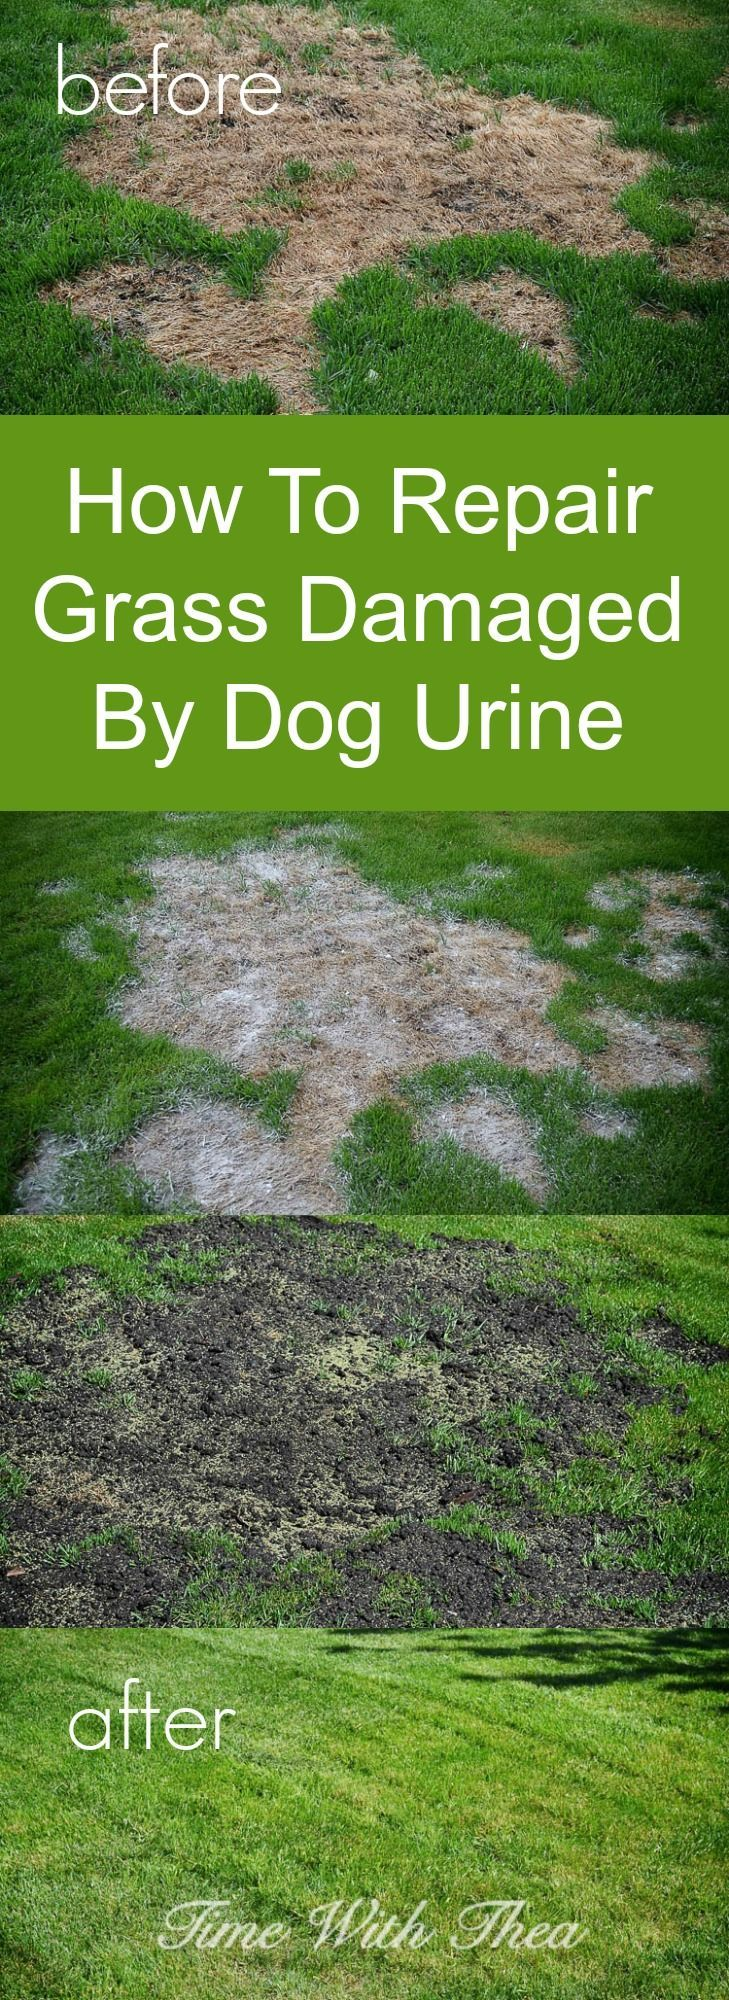 how to repair grass damaged by dog urine dog urine